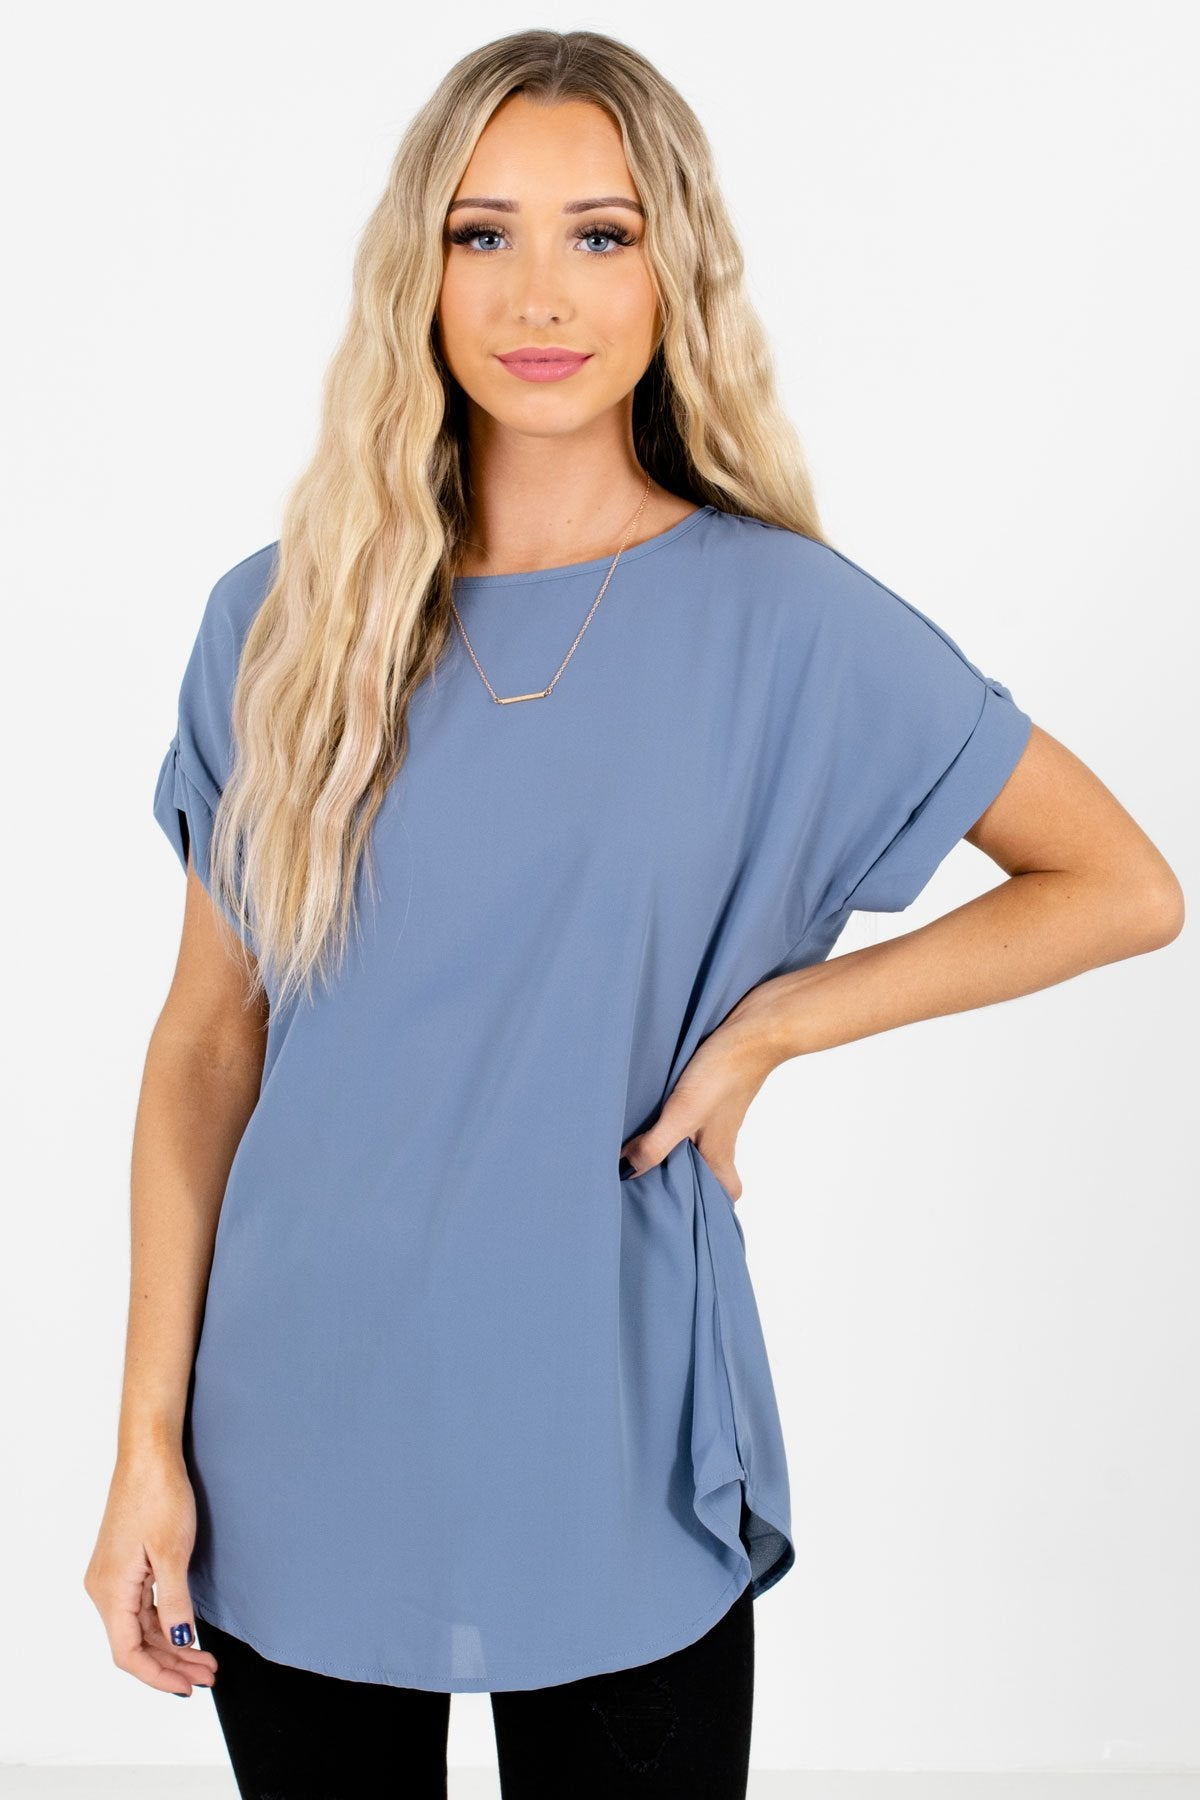 Blue Lightweight and Flowy Boutique Blouses for Women